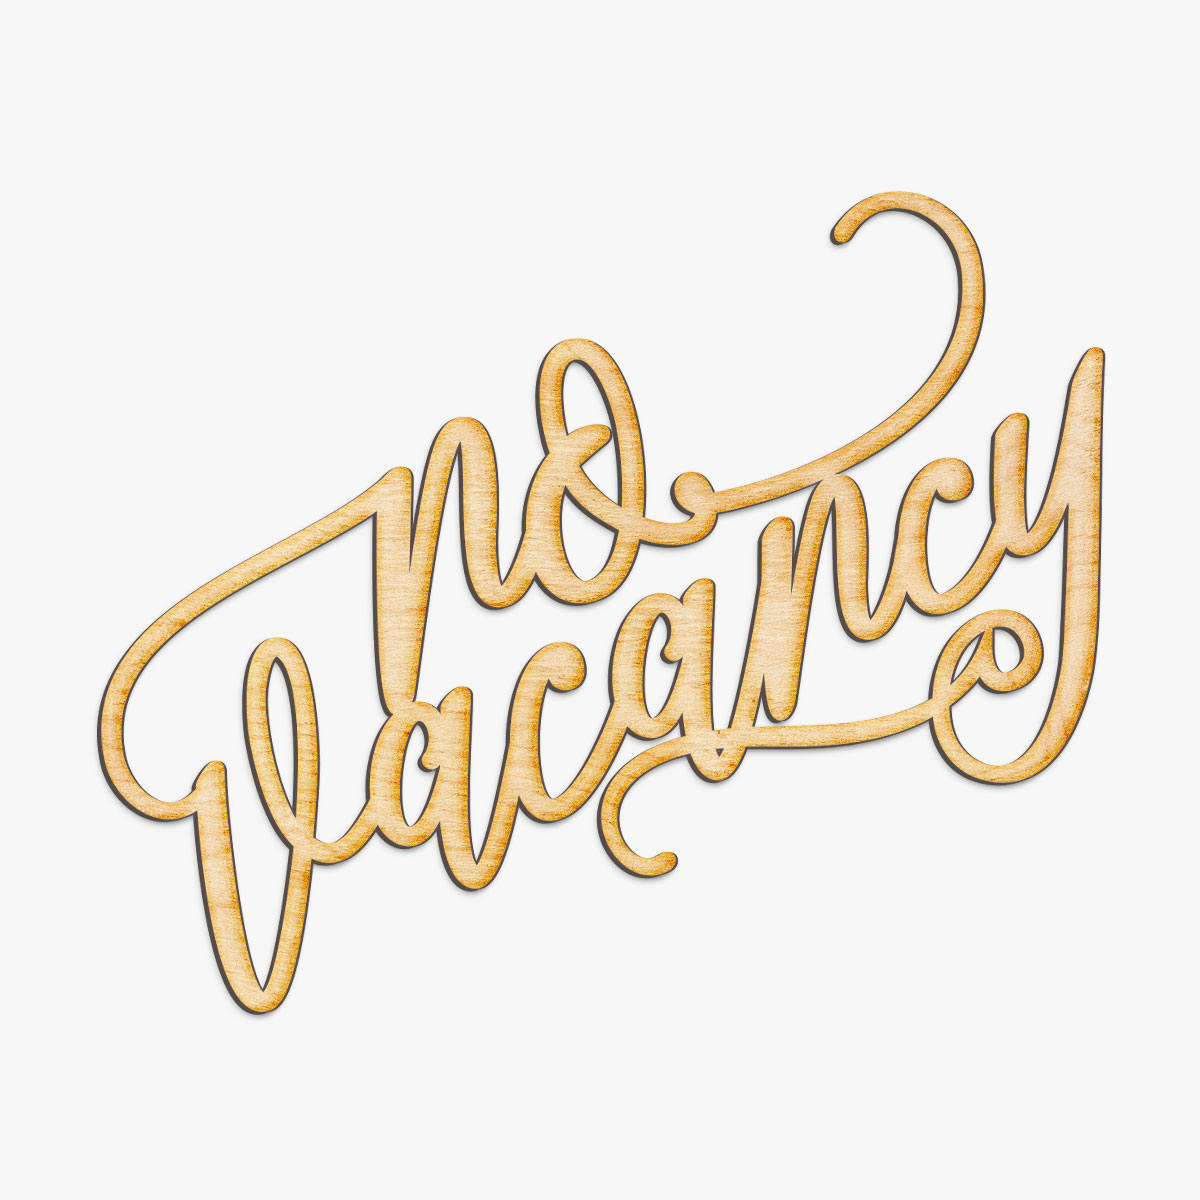 No Vacancy Wood Sign - Laser Cut Sign, Wood Sign Wall Decor ...